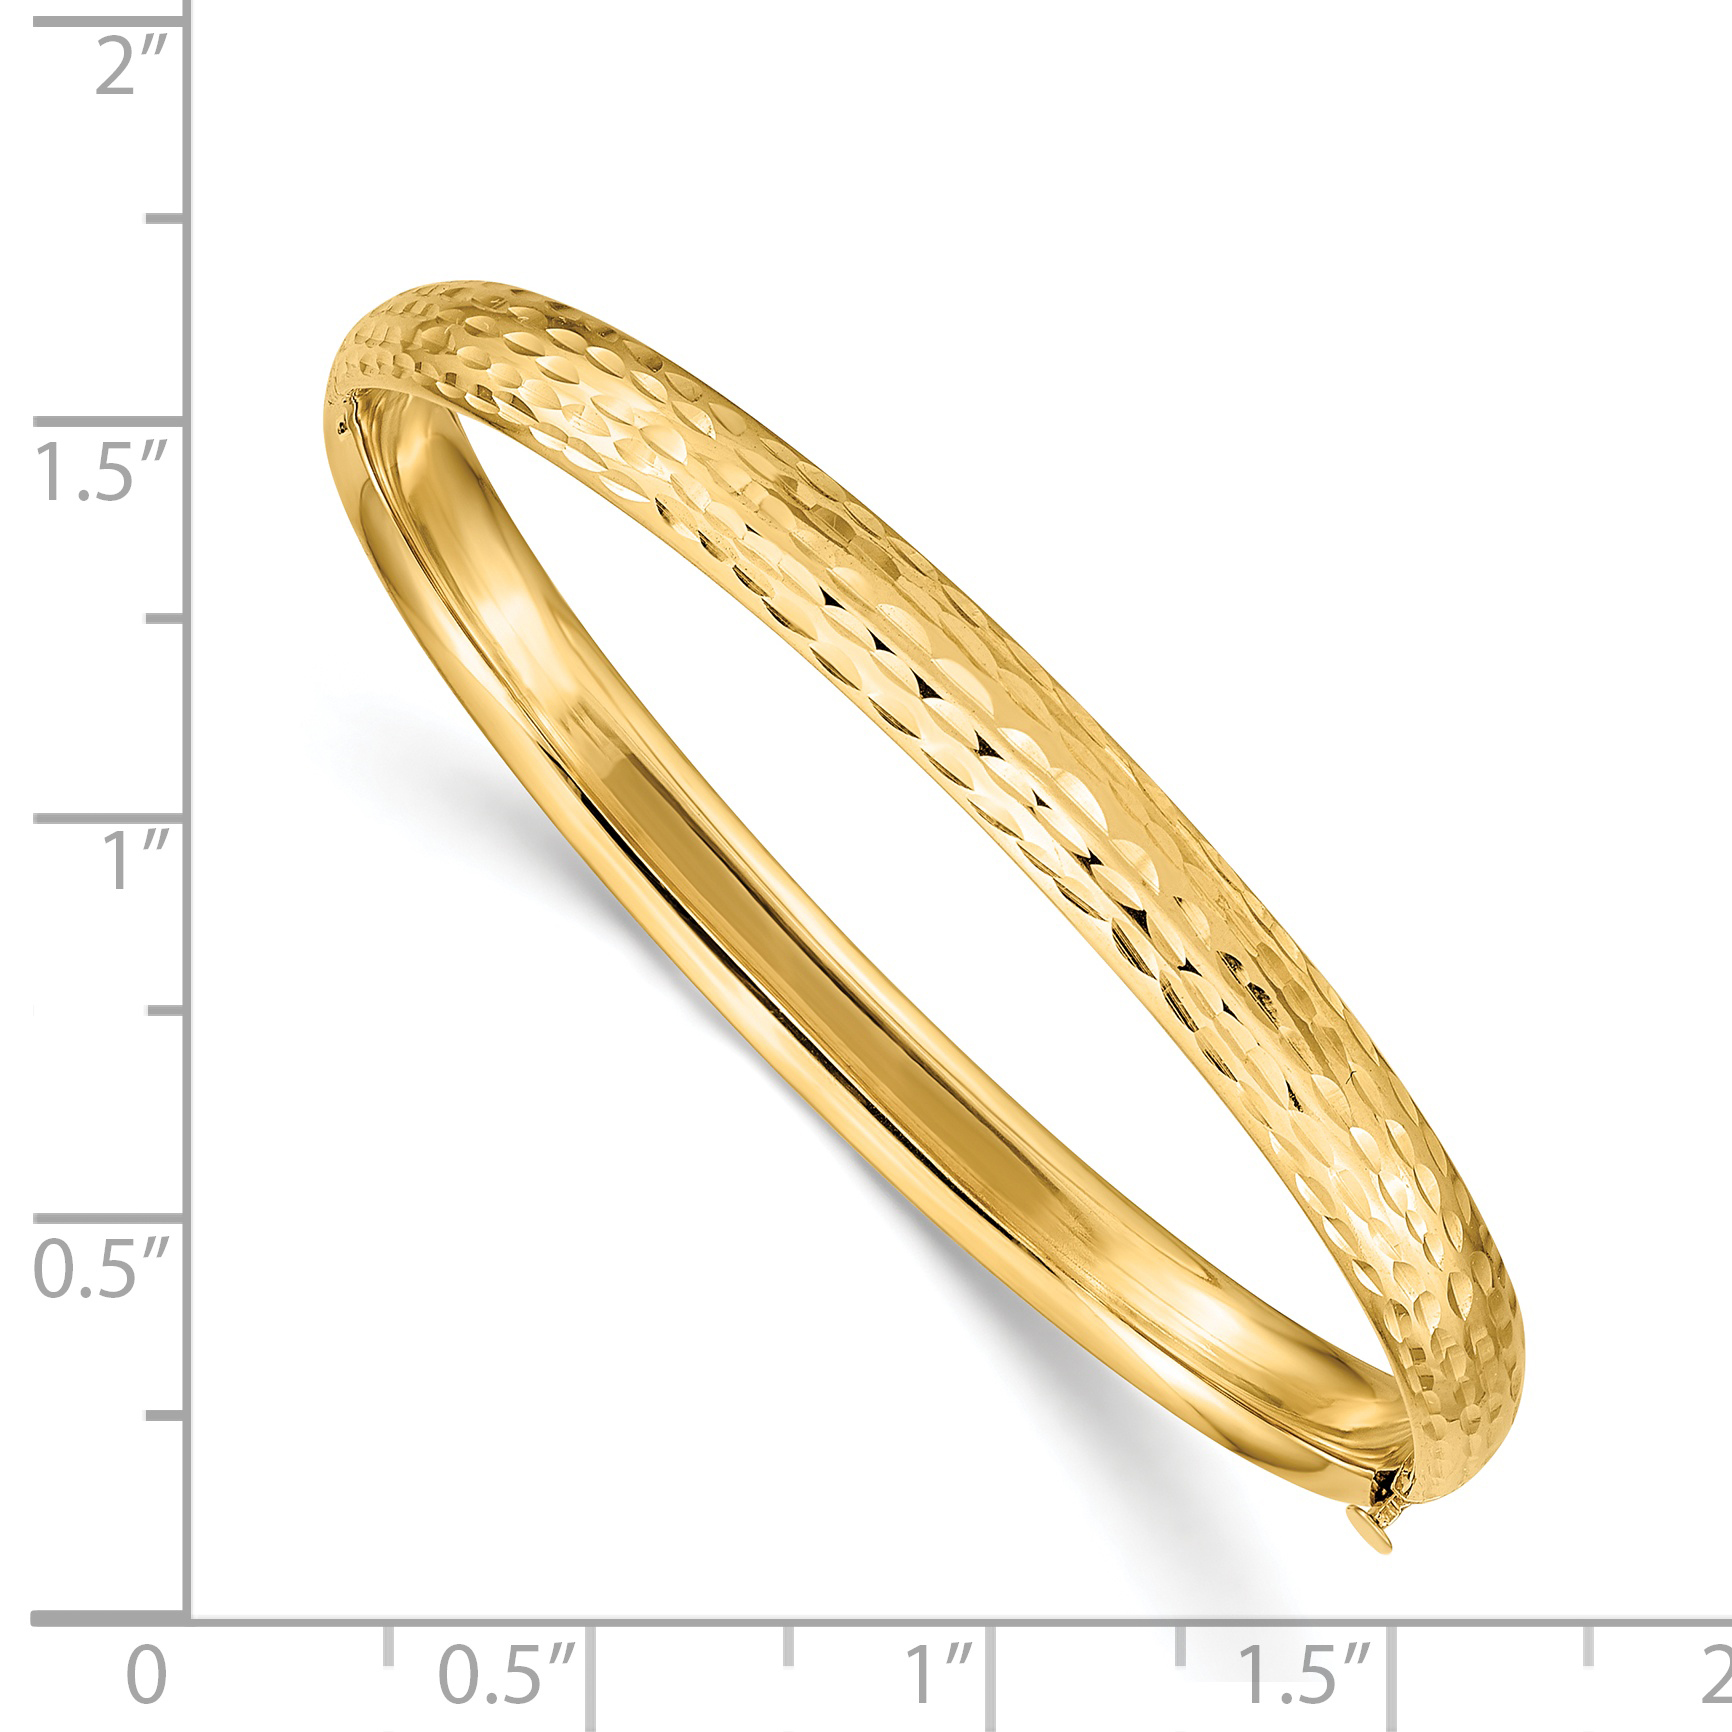 fb3594710b879 Details about 14k Yellow Gold Kids Hammered 5mm Hinged Baby Bangle Bracelet  Mothers Day Gifts